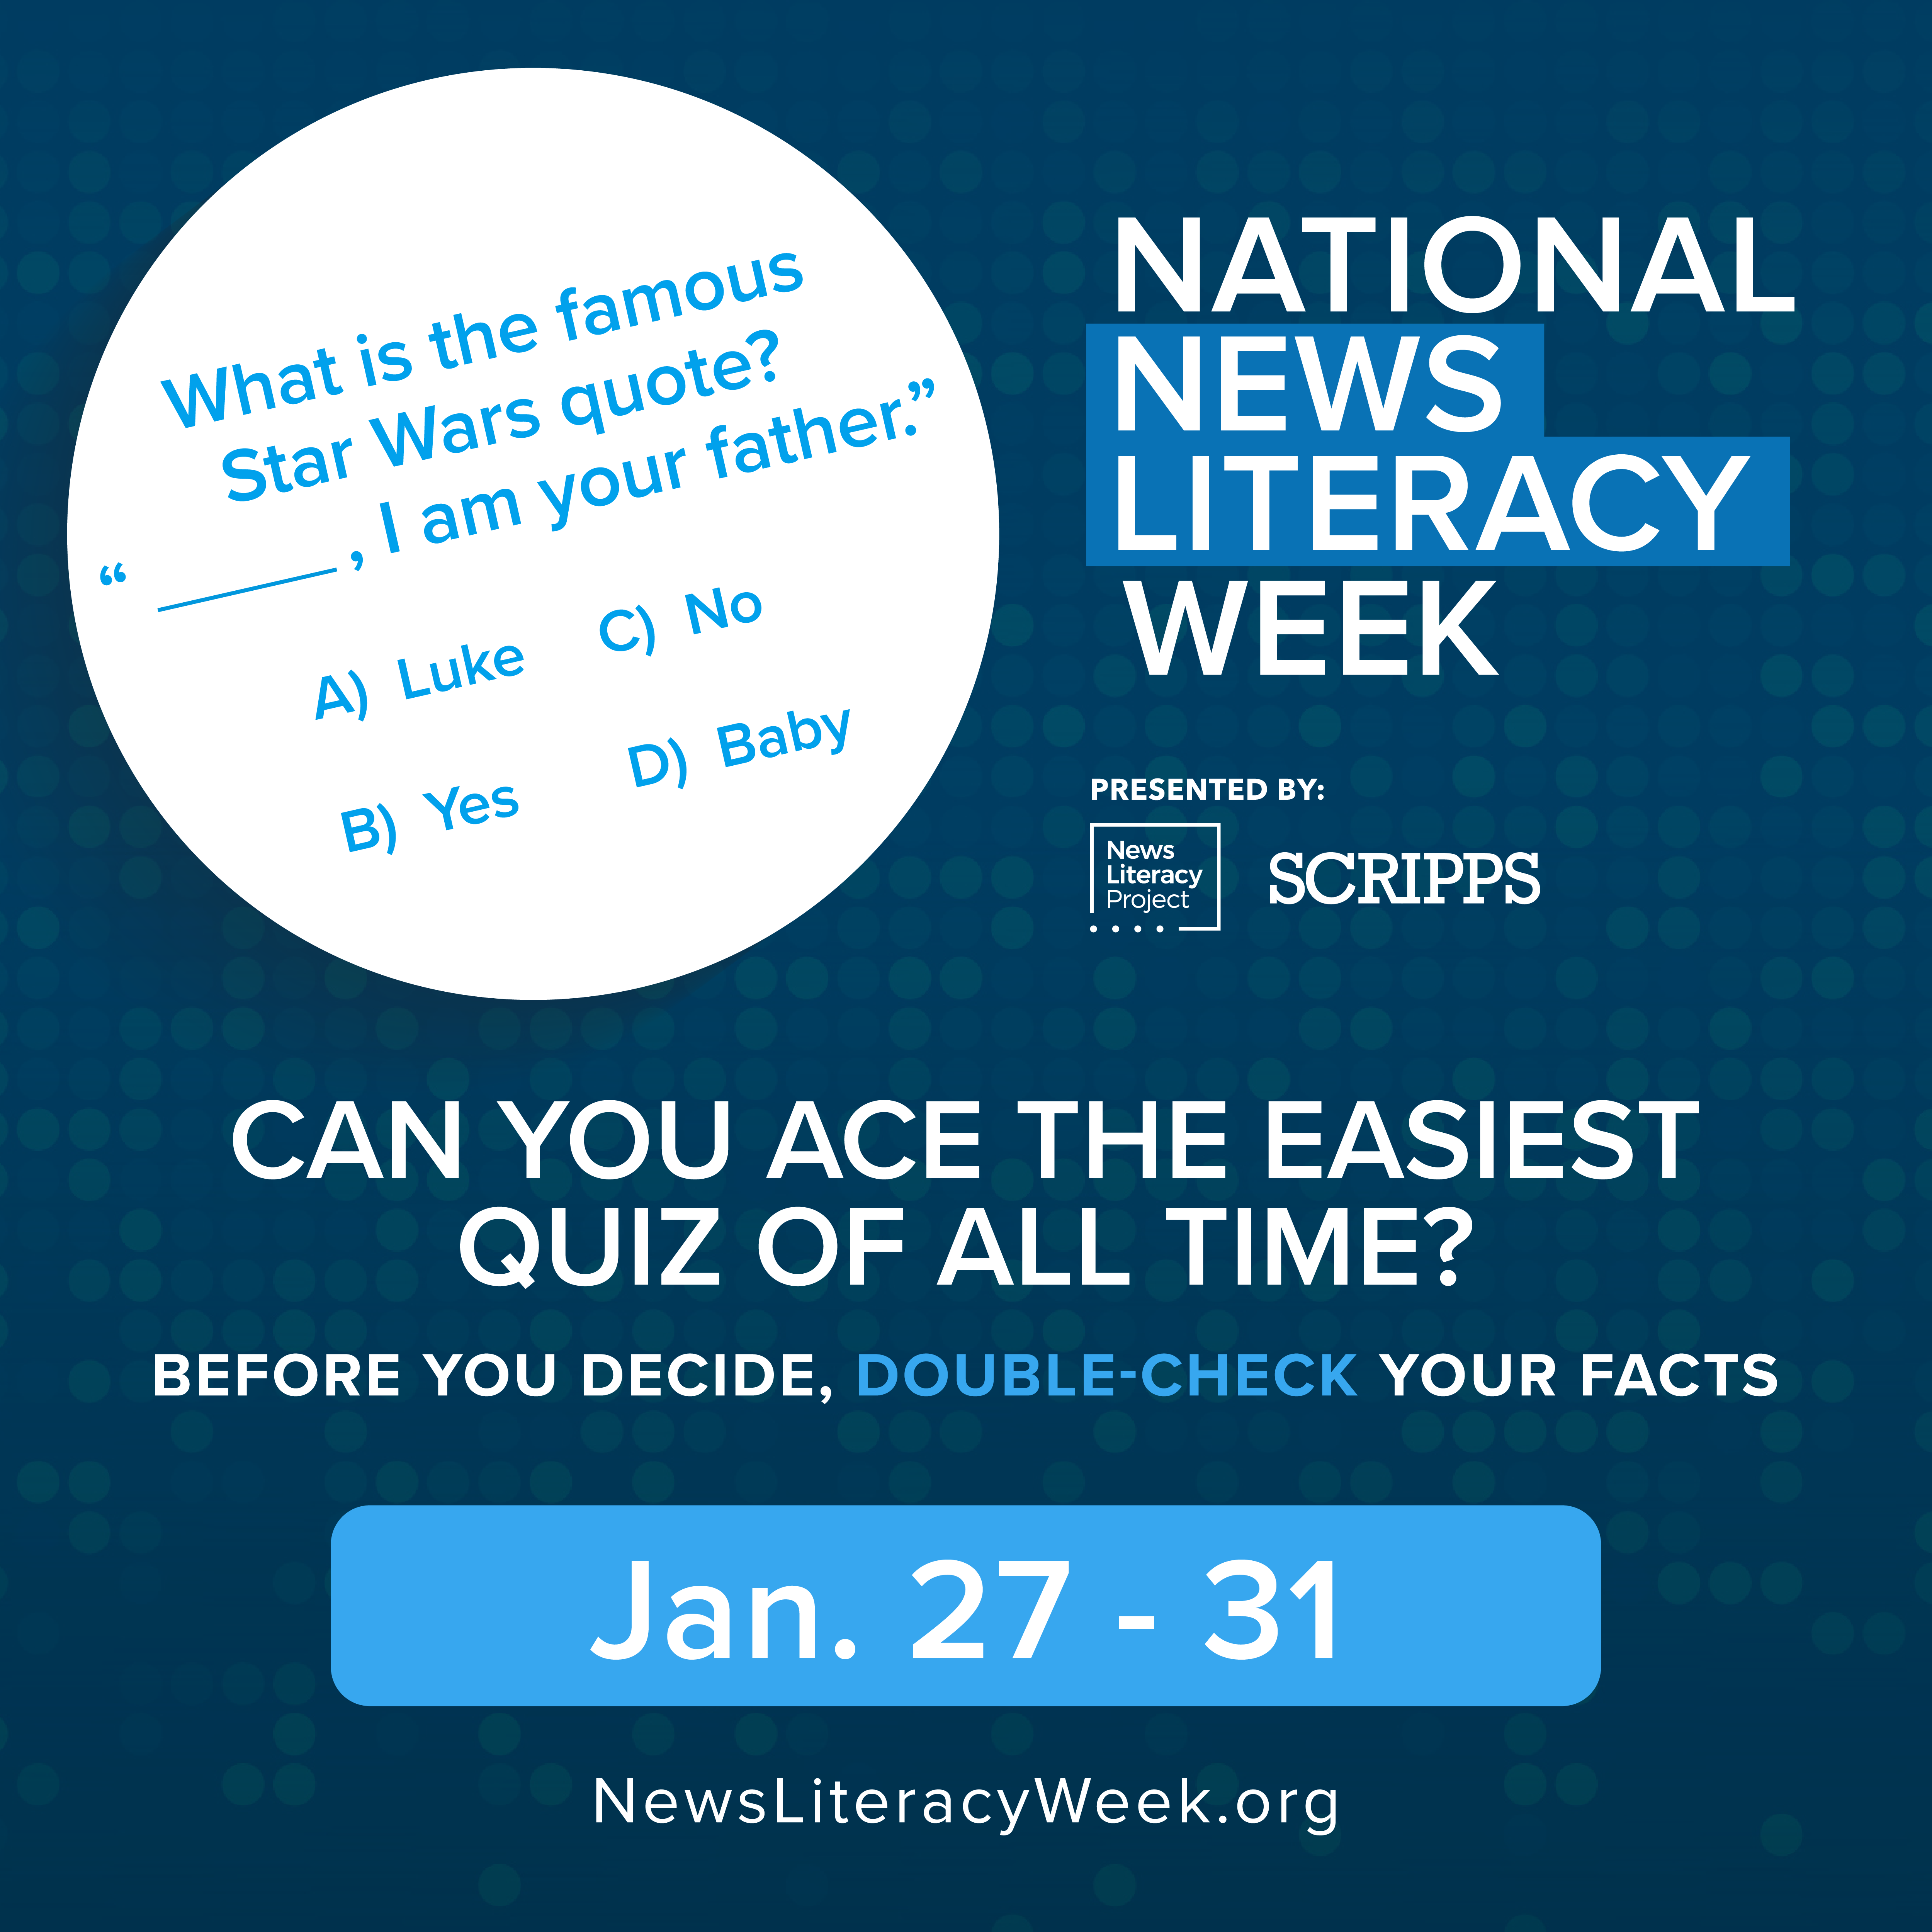 News Literacy Project and Scripps Launch National News Literacy Week